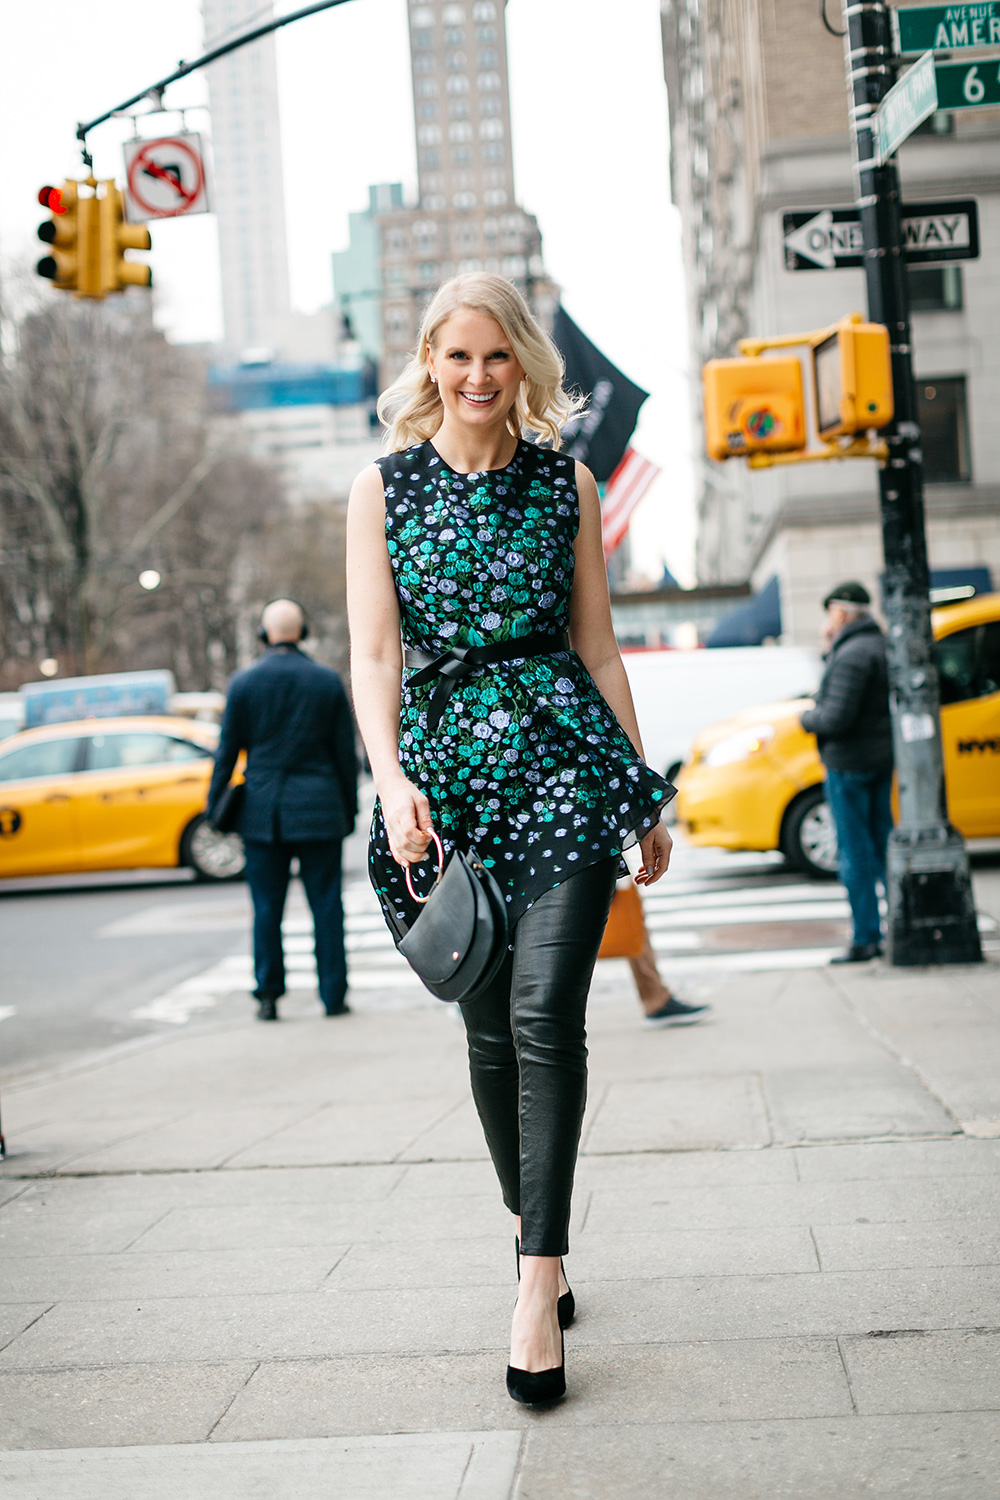 Merritt Beck at New York Fashion Week   The Style Scribe